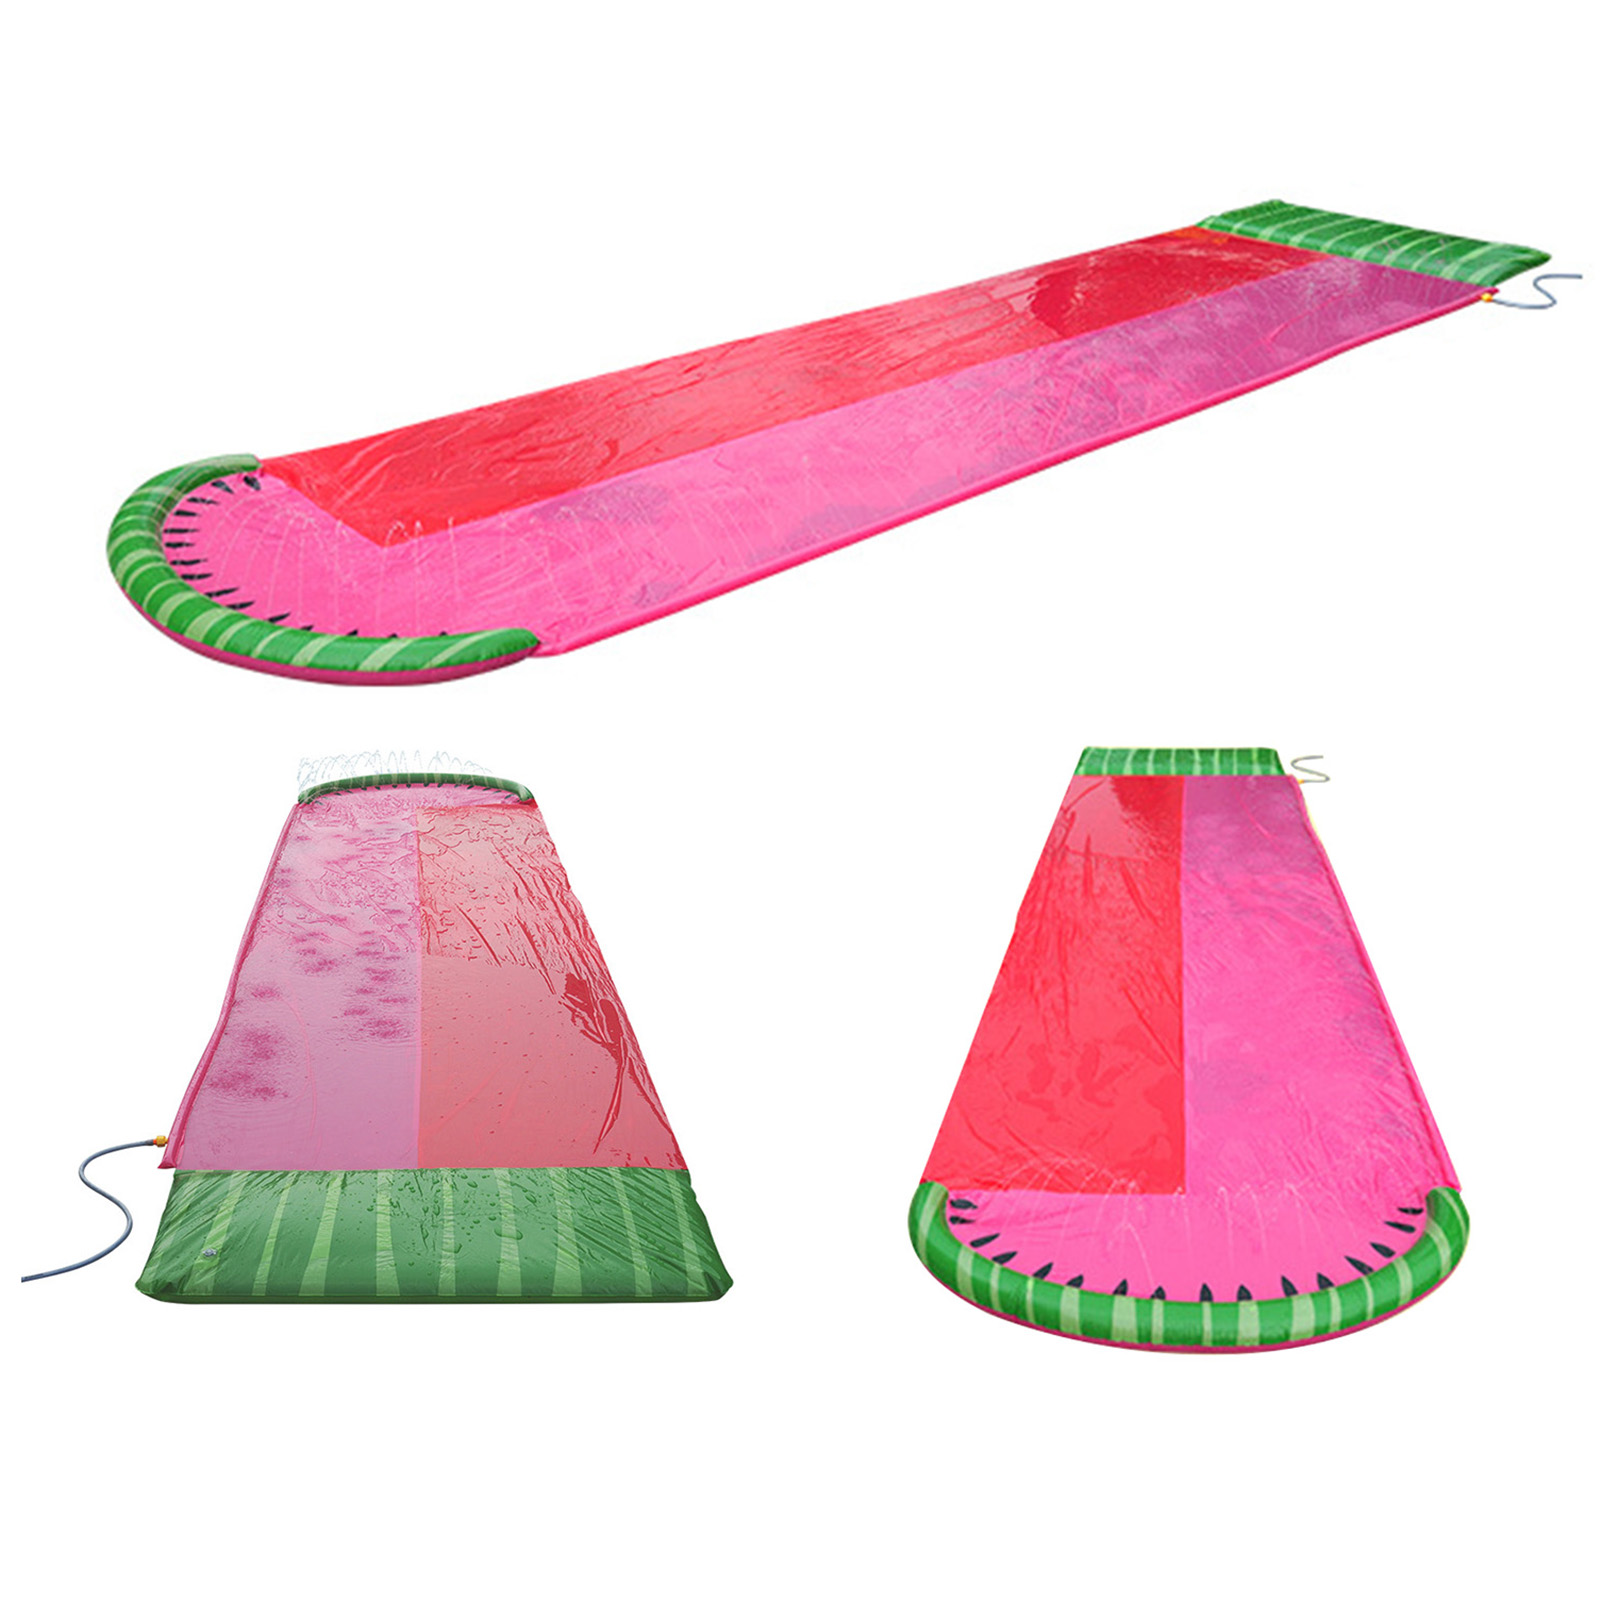 Watermelon Double Lawn Water Slide Giant Inflatable Water Slide Pools Backyard Splash Mat for Kids Children Outdoor Fun Toys